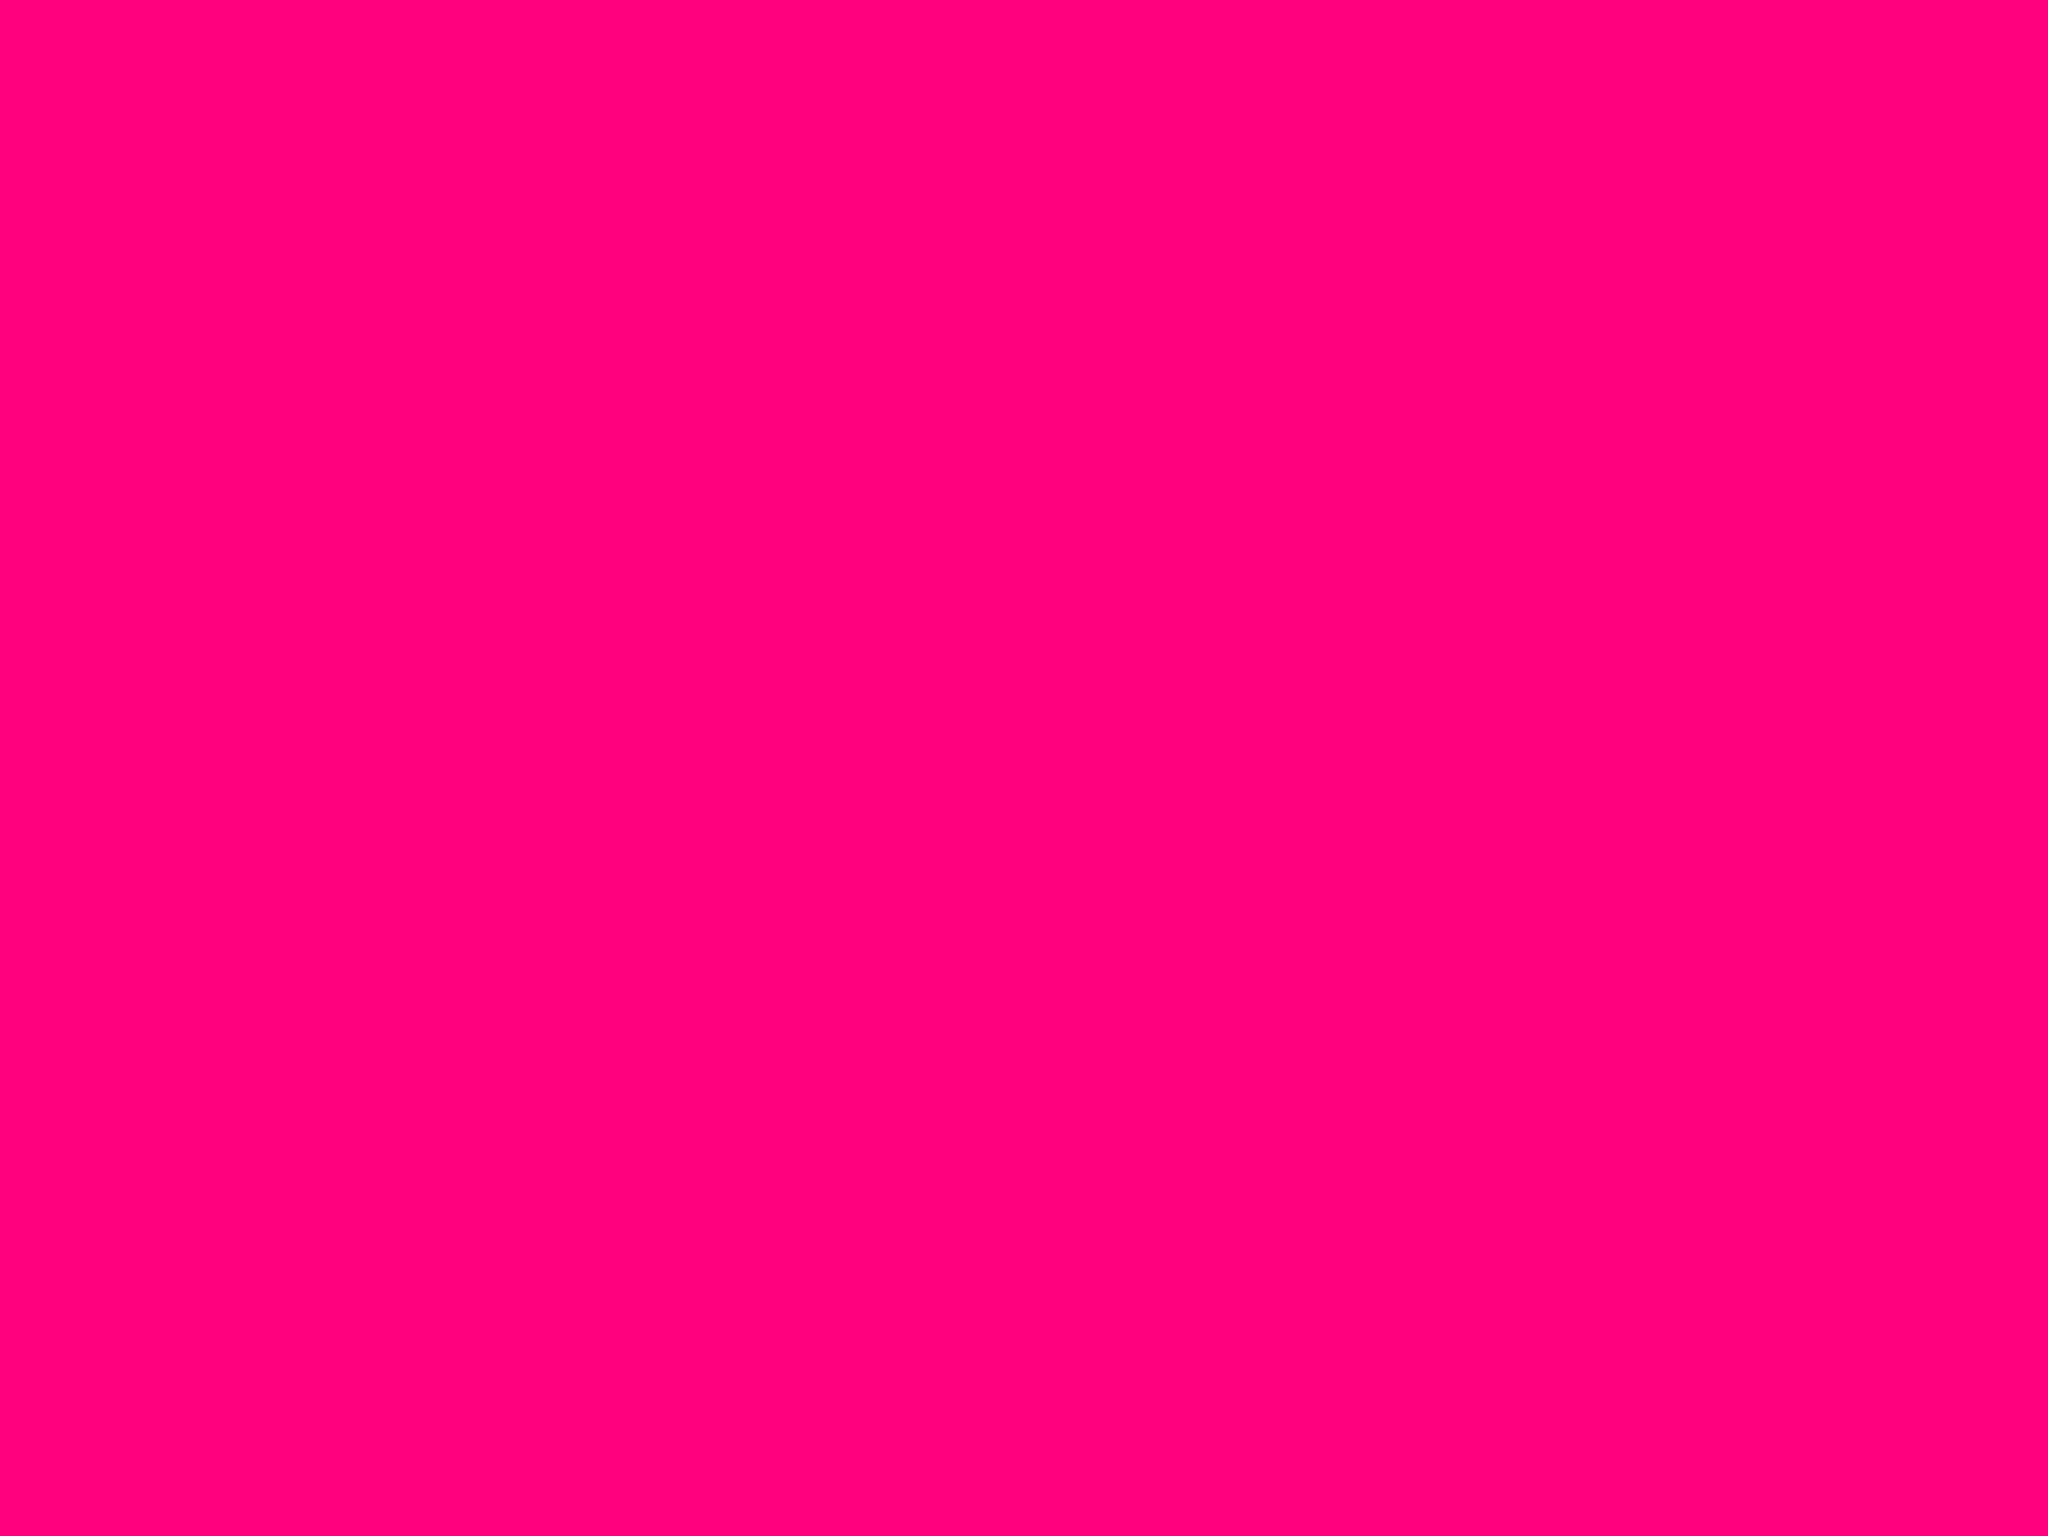 Top Plain Bright Pink Background Wallpapers 2048x1536